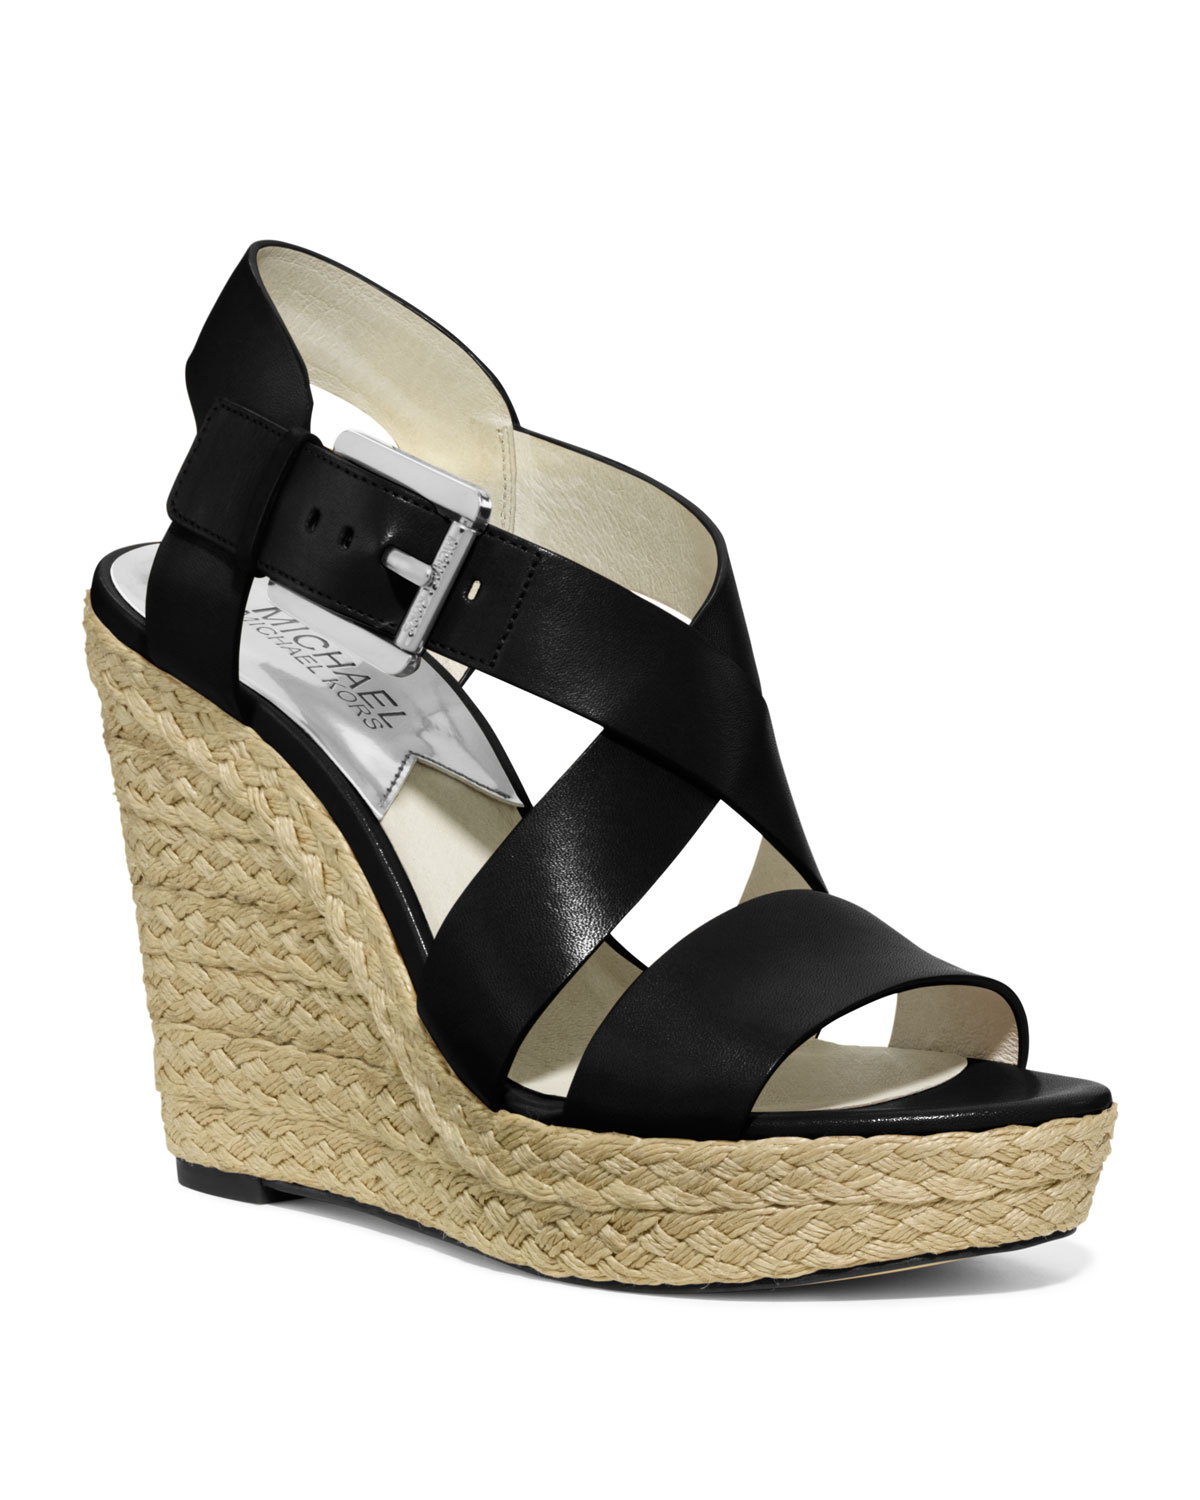 Michael Kors Giovanna Espadrille Wedge Sandal In Black Lyst